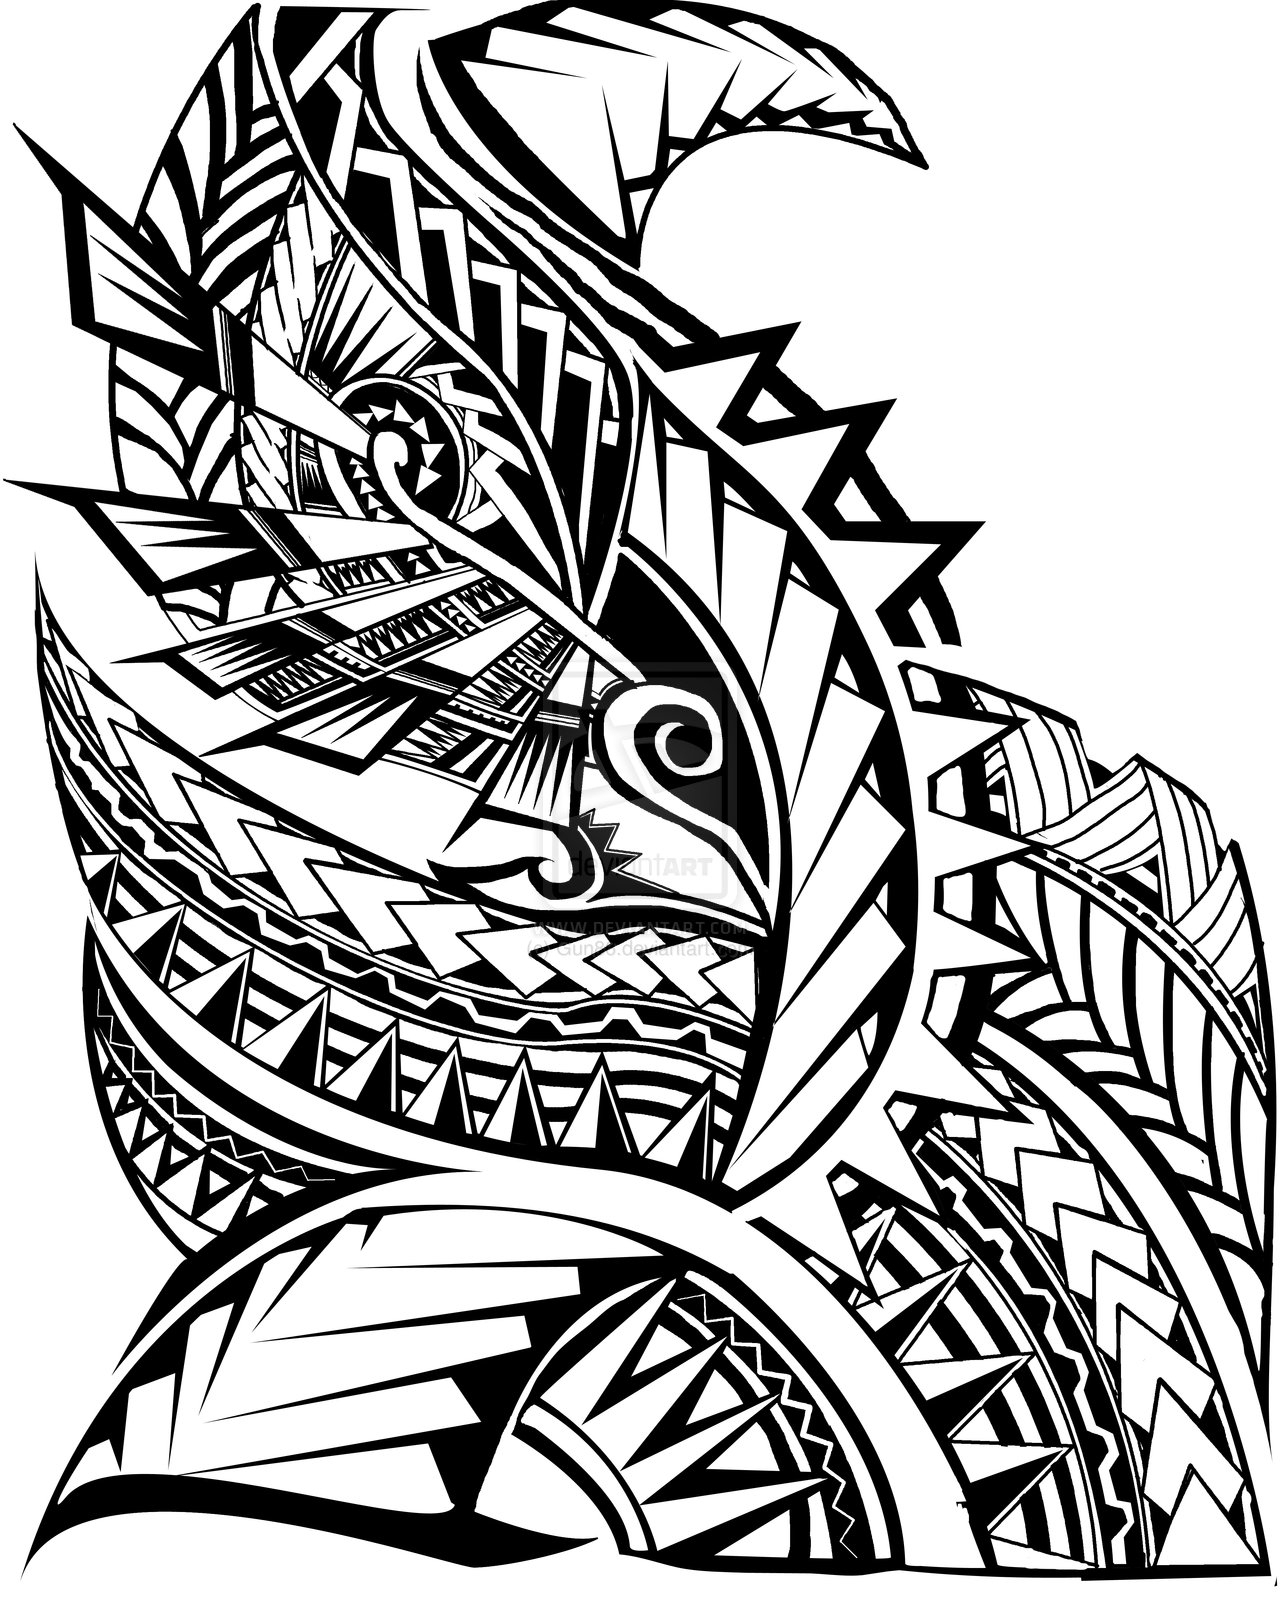 1280x1600 Samoan Tribal Tattoo Drawings 1000+ Images About Tattoo On